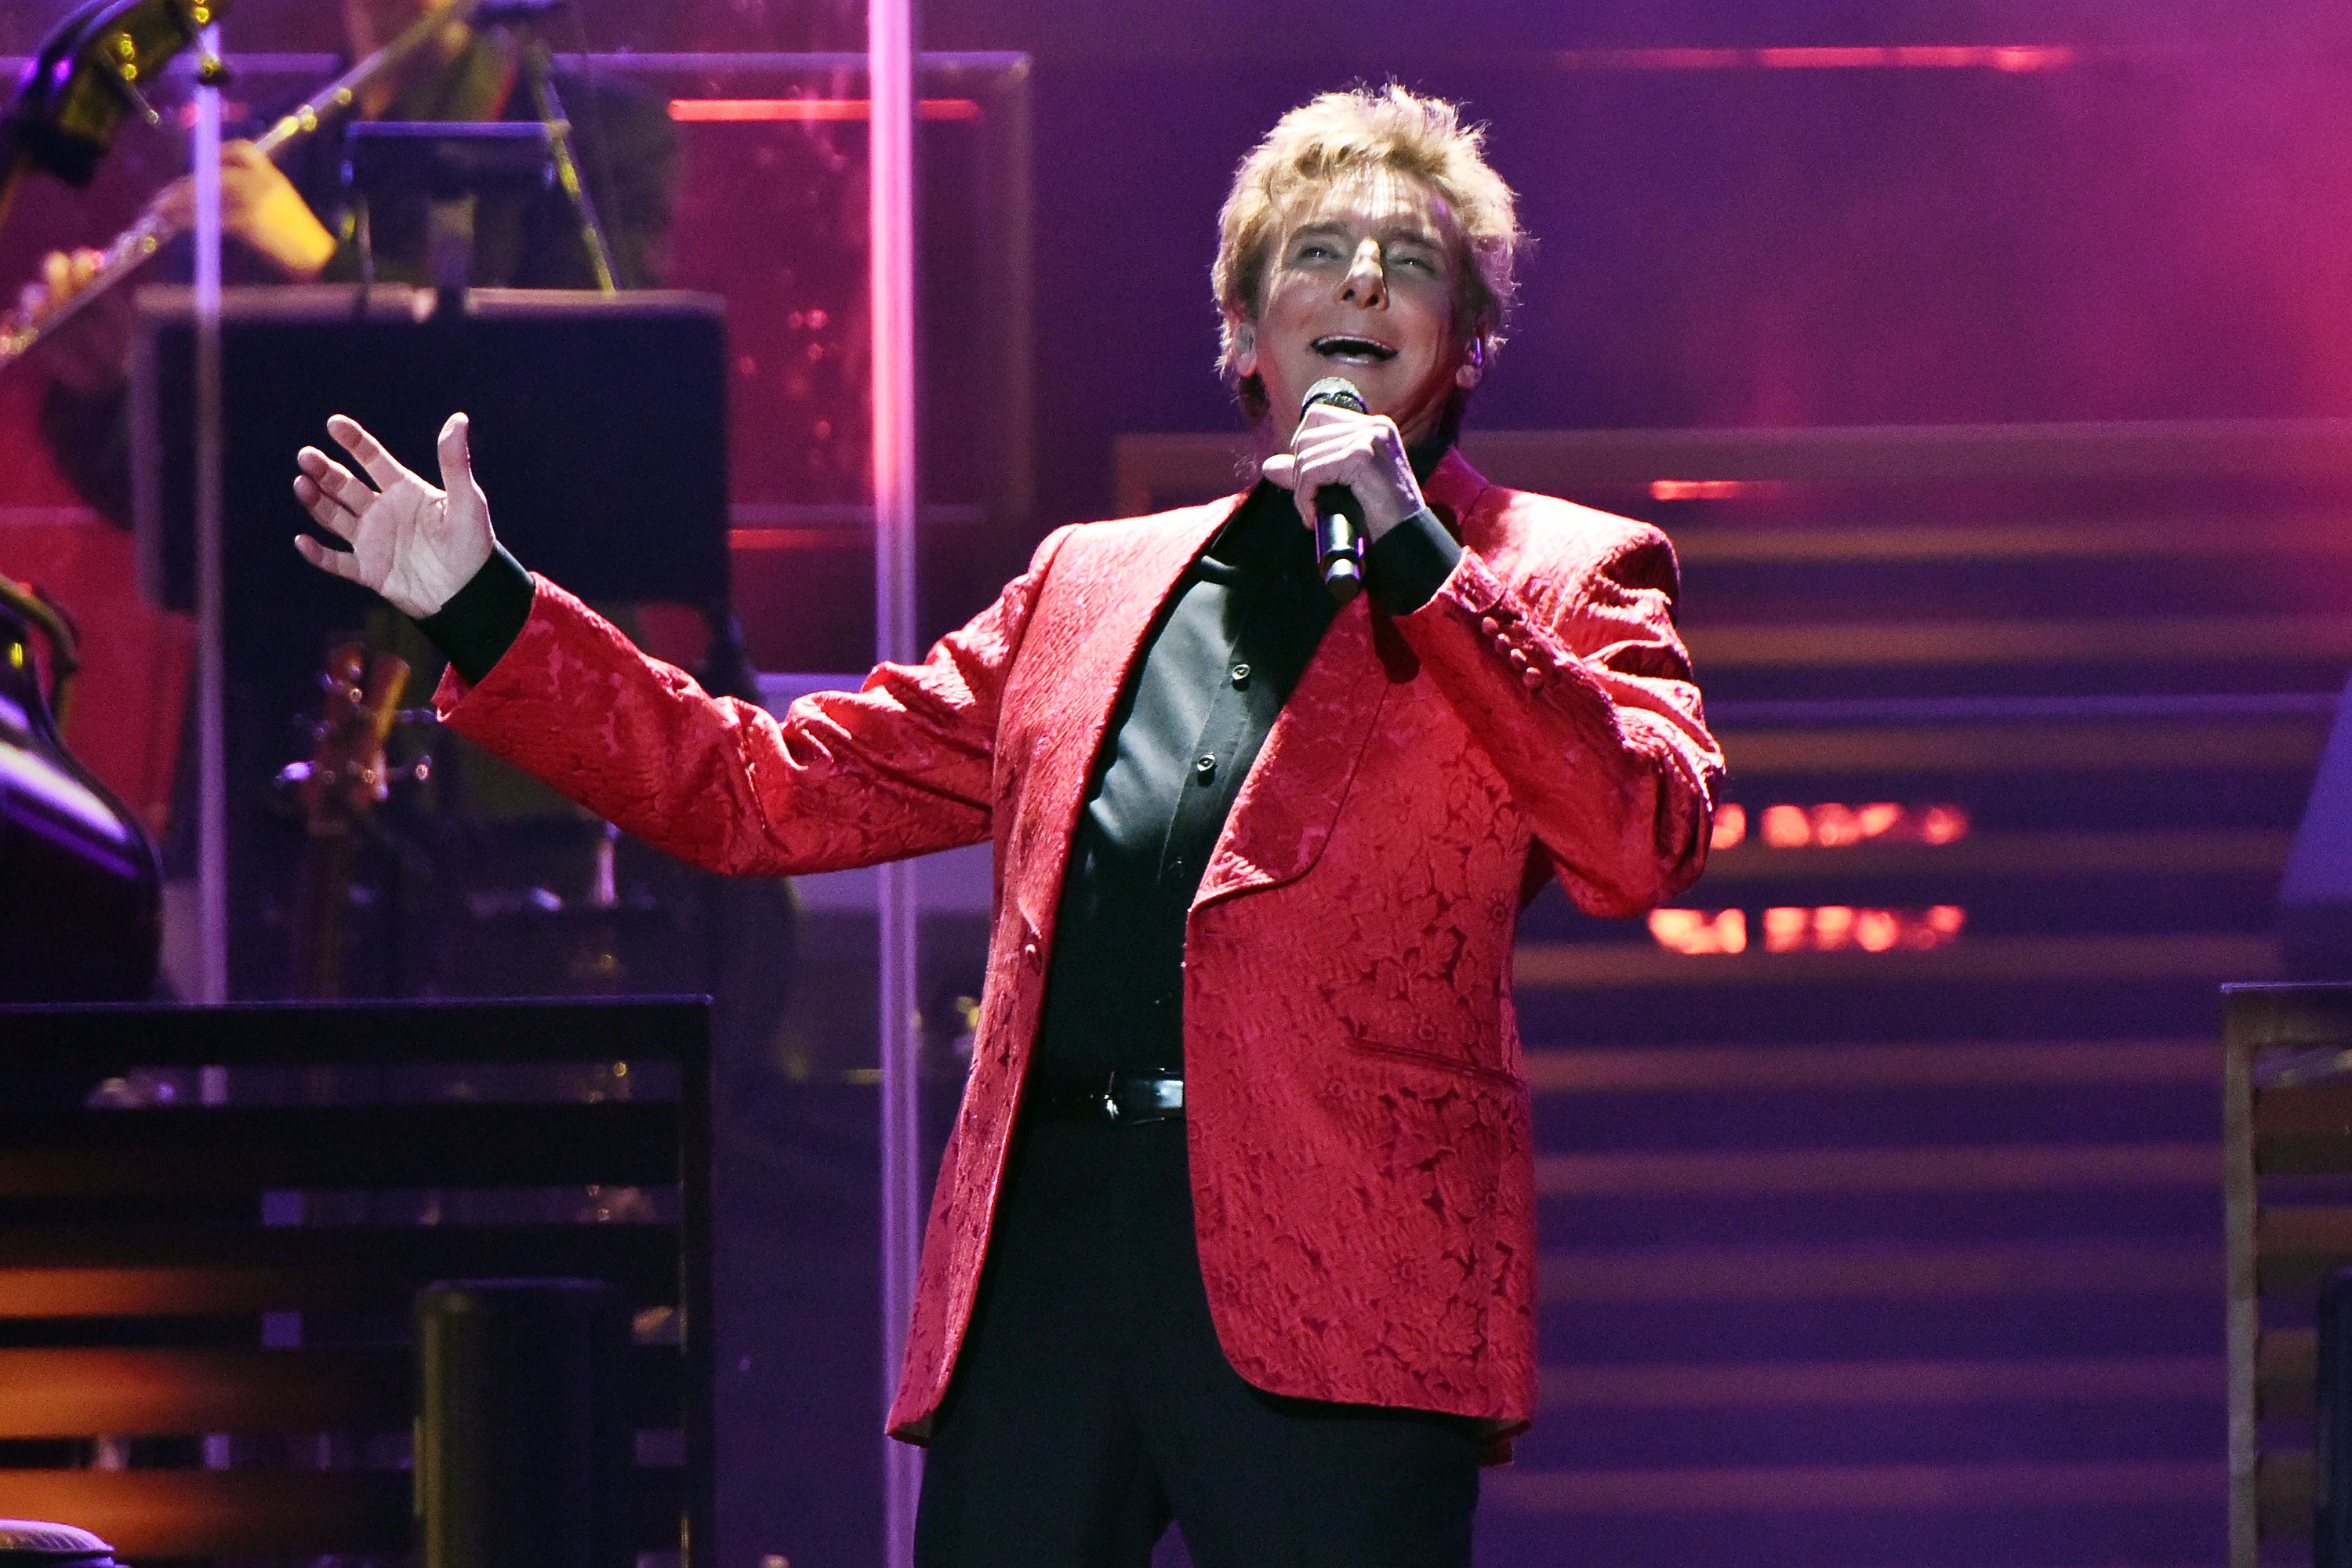 Barry Manilow cancels string of tour dates as he is rushed to hospital following oral surgery complications